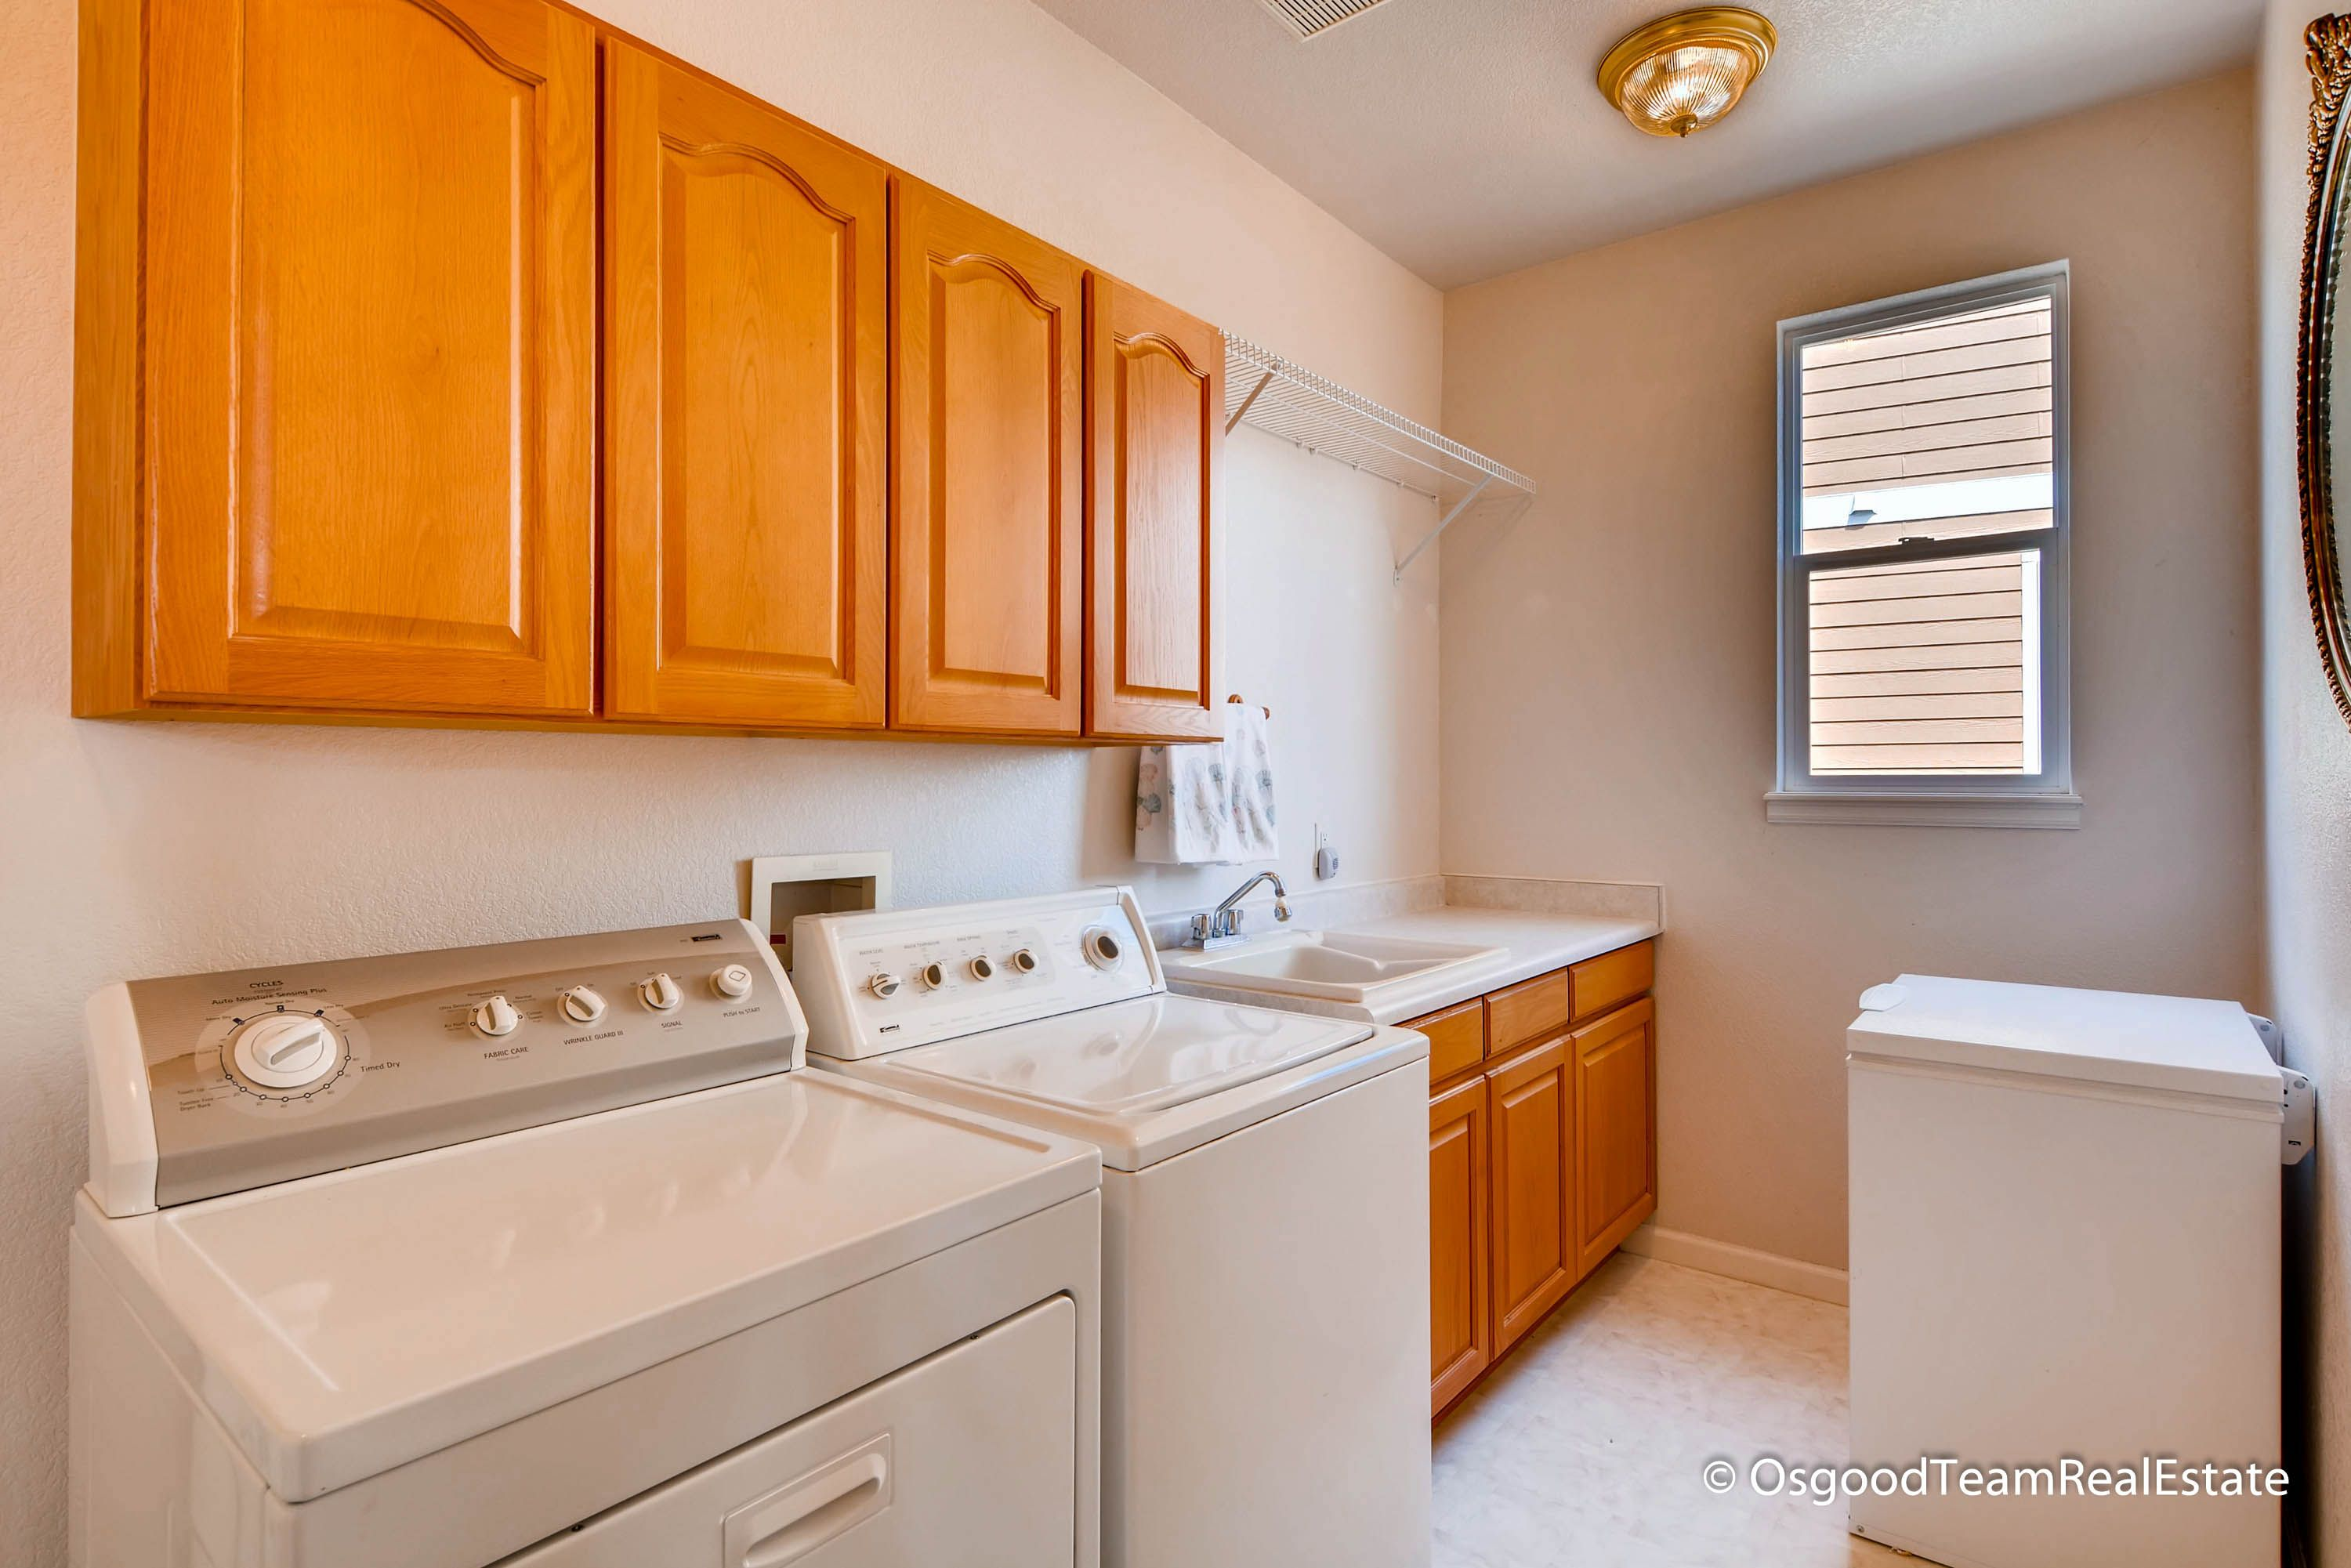 Huge Laundry Room With Basin And Cabinets For Storage